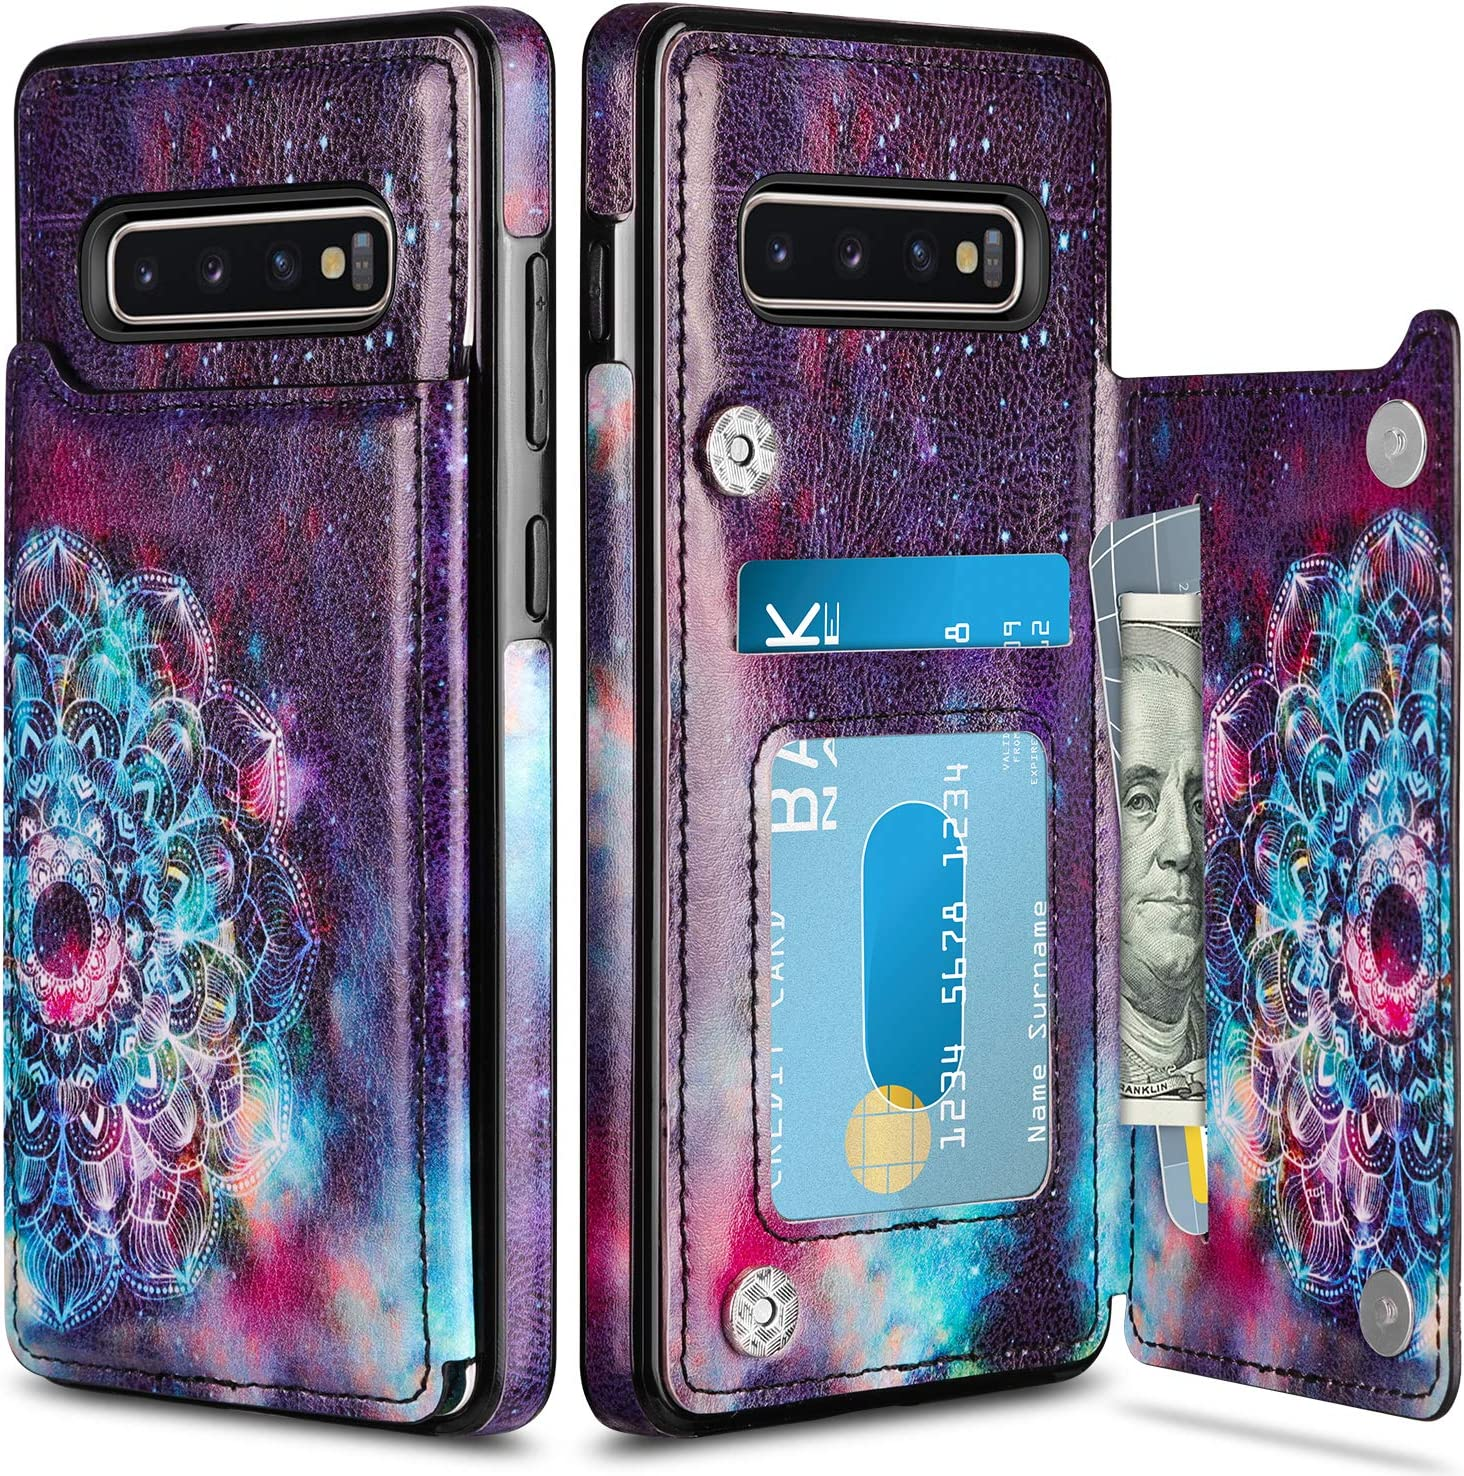 HianDier Wallet Case for Galaxy S10 Plus Slim Protective Case with Credit Card Slot Holder for Women Flip Folio Soft PU Leather Magnetic Closure Cover for Samsung Galaxy S10 Plus 6.4 Inches, Mandala